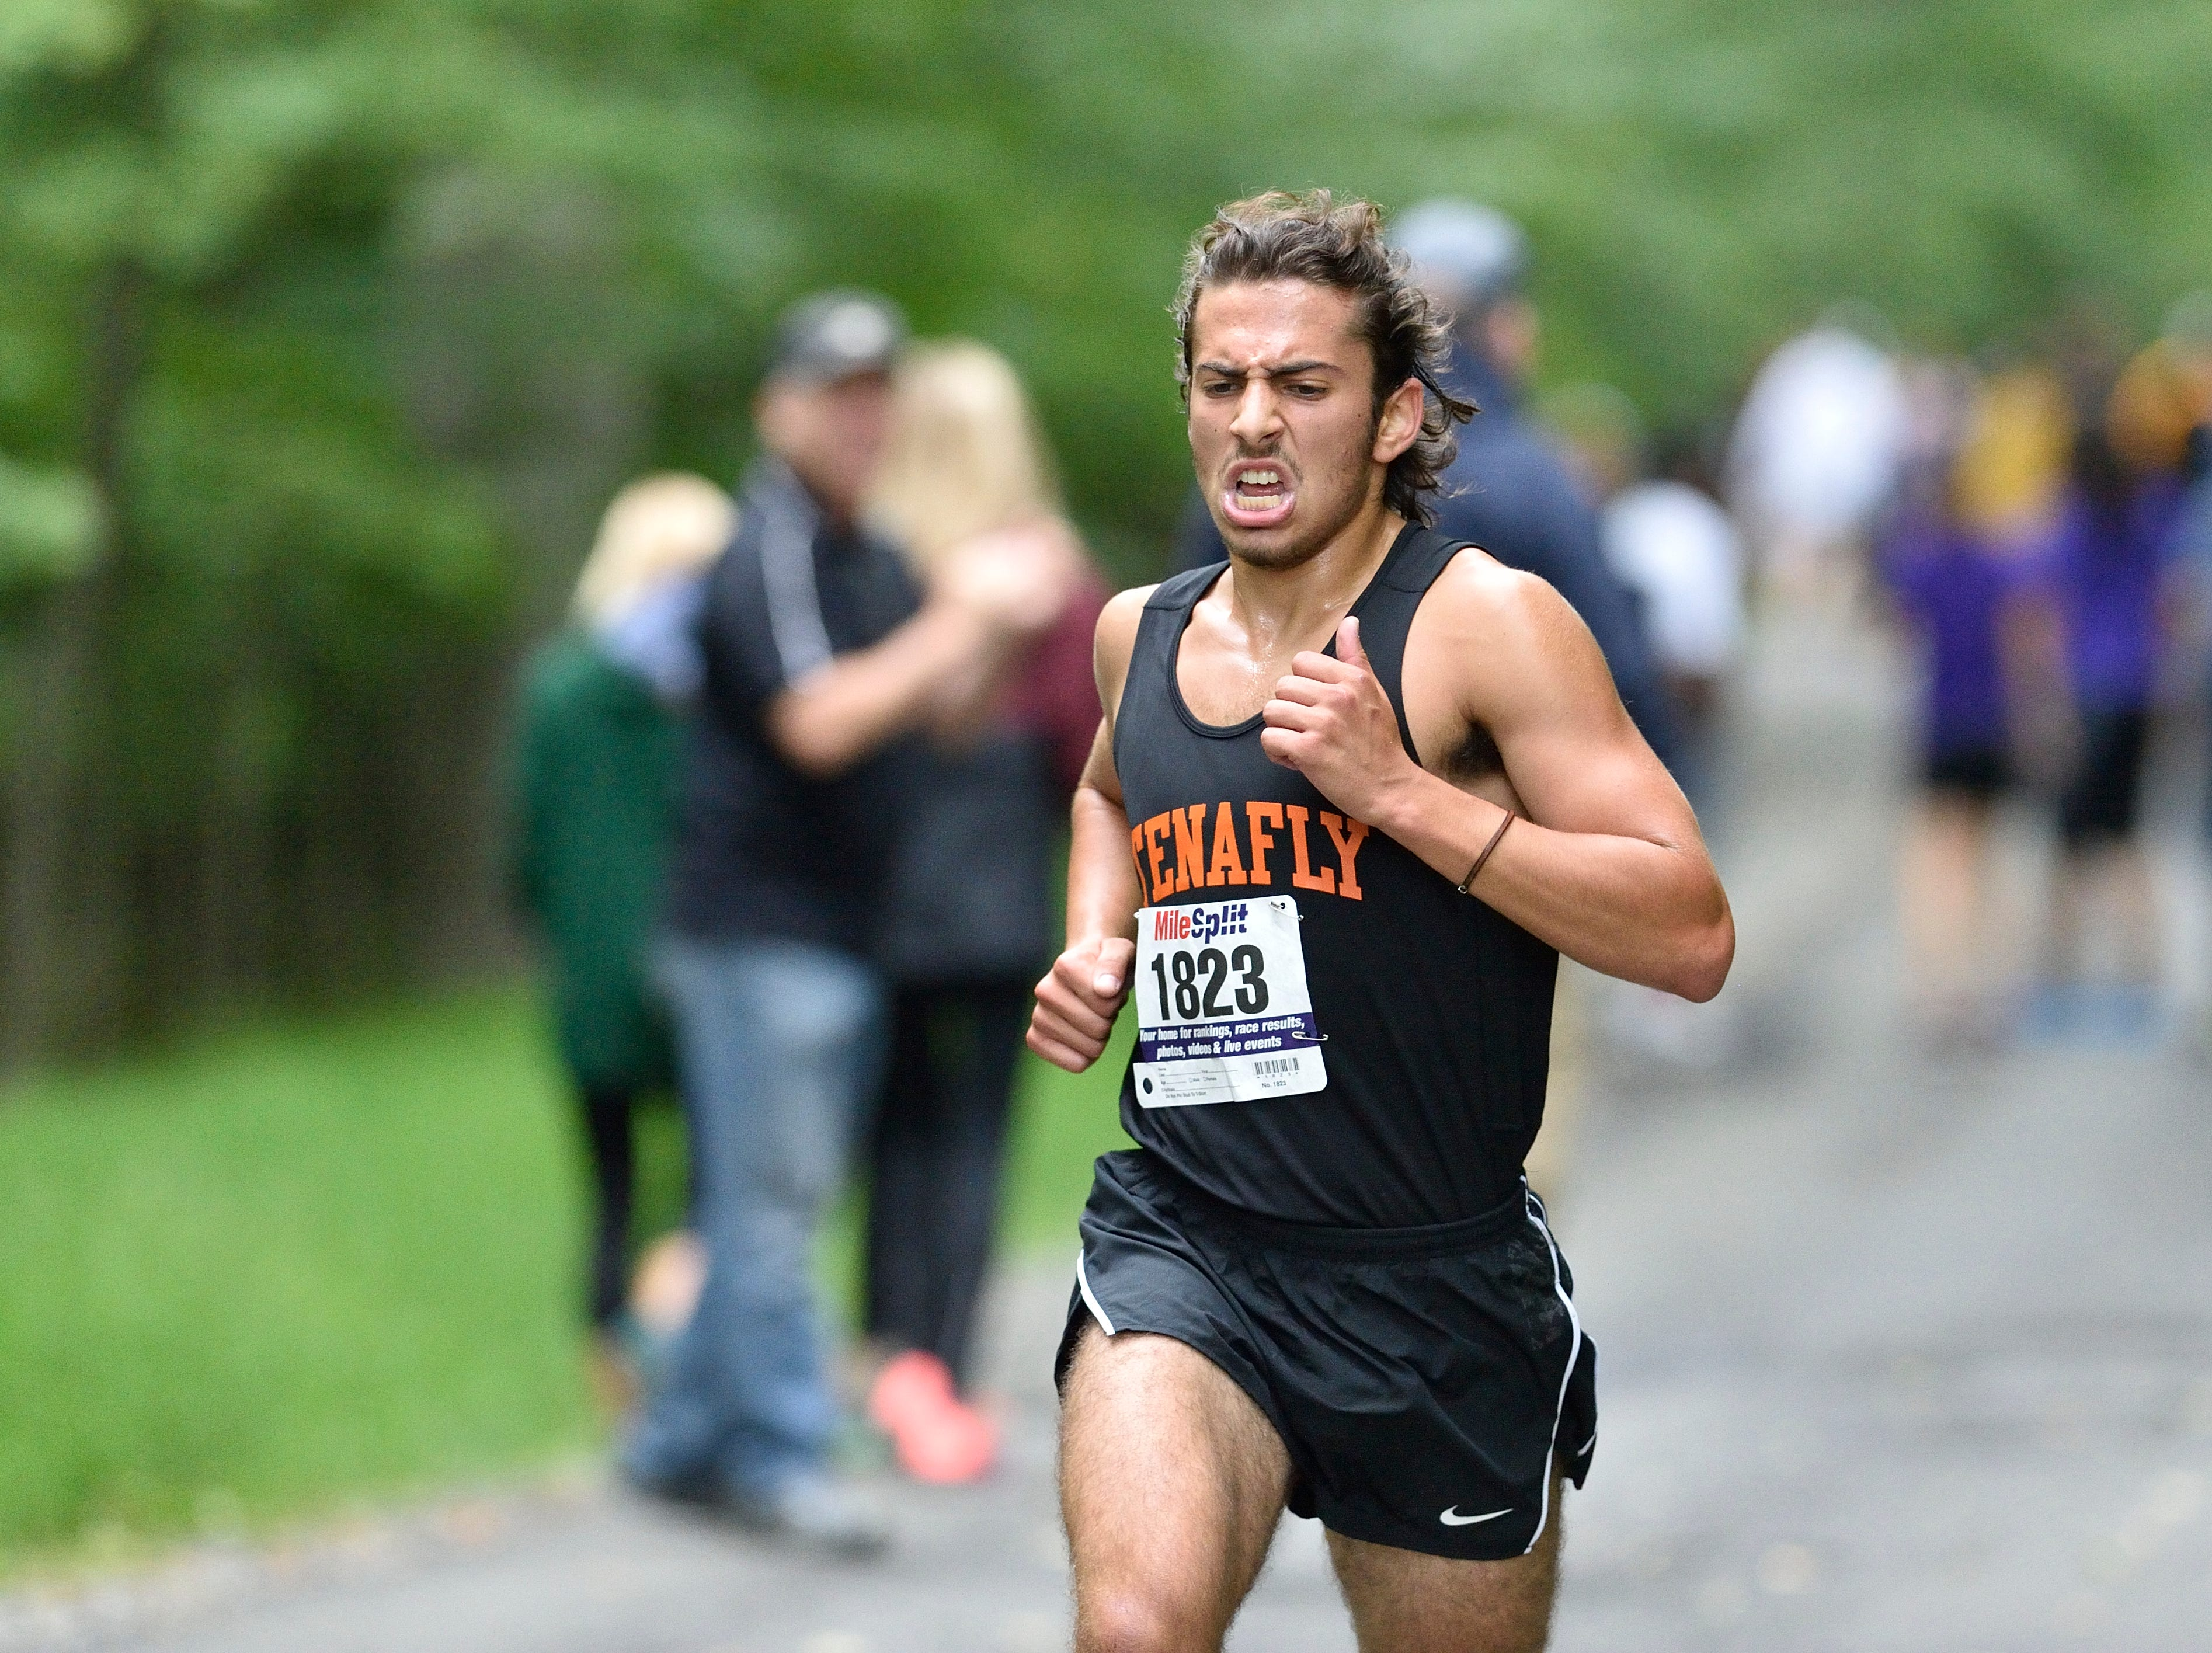 Carmel Ohring of Tenafly HS competes in the boys varsity B cross country race at Darlington County Park in Mahwah.